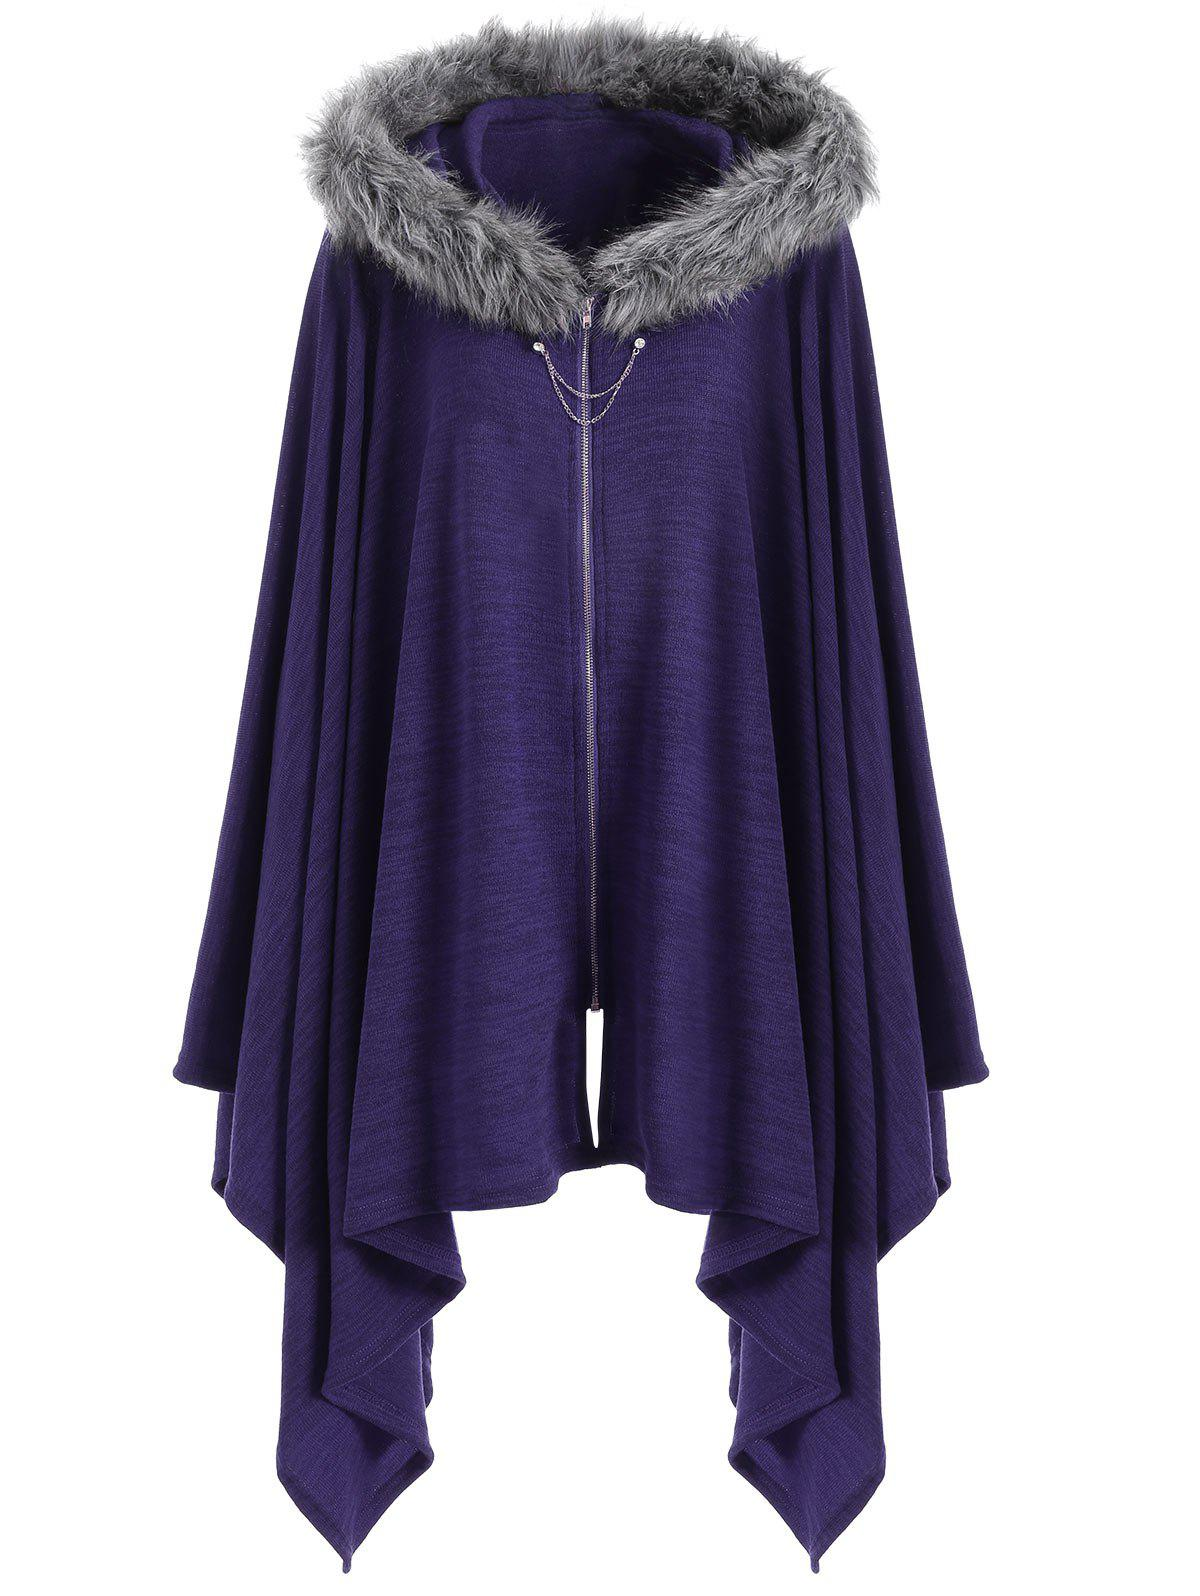 Faux Fur Insert Plus Size Asymmetric Cape CoatWOMEN<br><br>Size: XL; Color: PURPLE; Clothes Type: Others; Material: Polyester,Spandex; Type: Wide-waisted; Shirt Length: Regular; Sleeve Length: Full; Collar: Hooded; Pattern Type: Solid; Style: Fashion; Season: Fall,Winter; Weight: 0.4700kg; Package Contents: 1 x Coat;